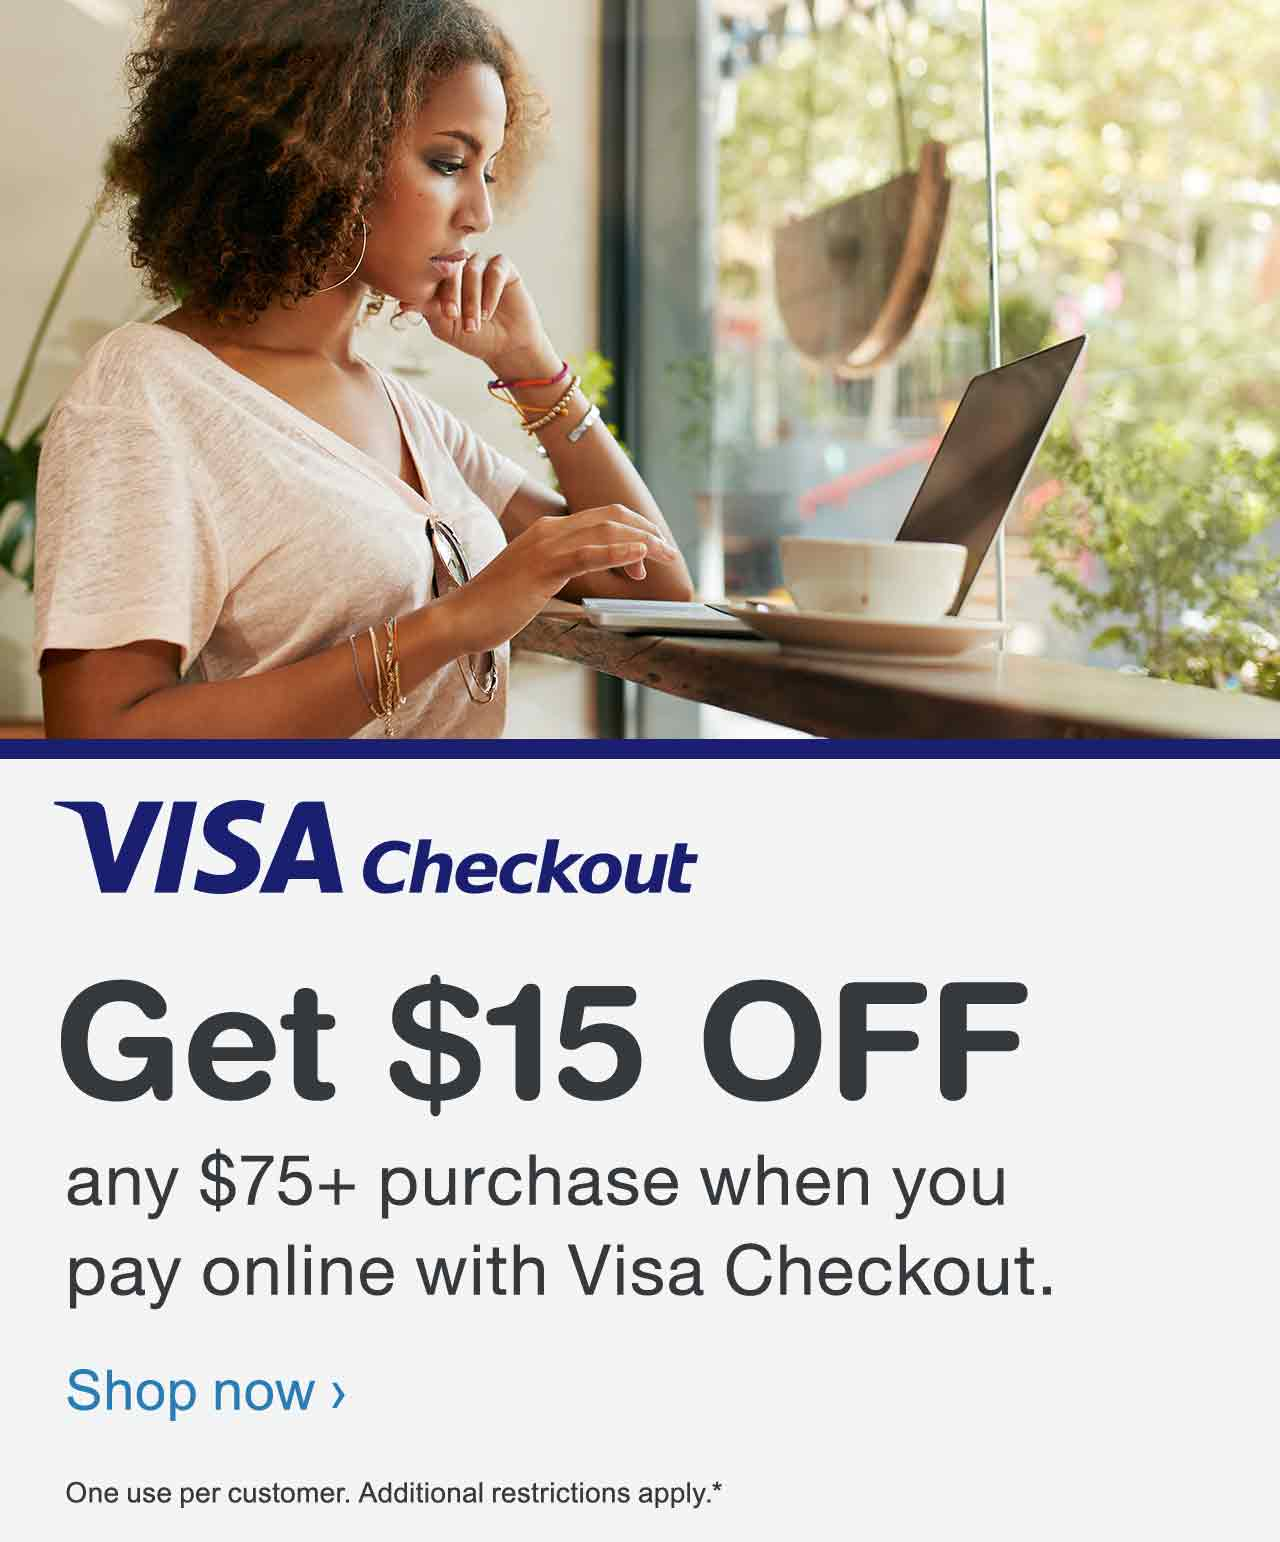 VISA Checkout. Get $10 OFF any $50+ purchase when you pay online with Visa Checkout. One use per customer. Additional restrictions apply.* Shop now.